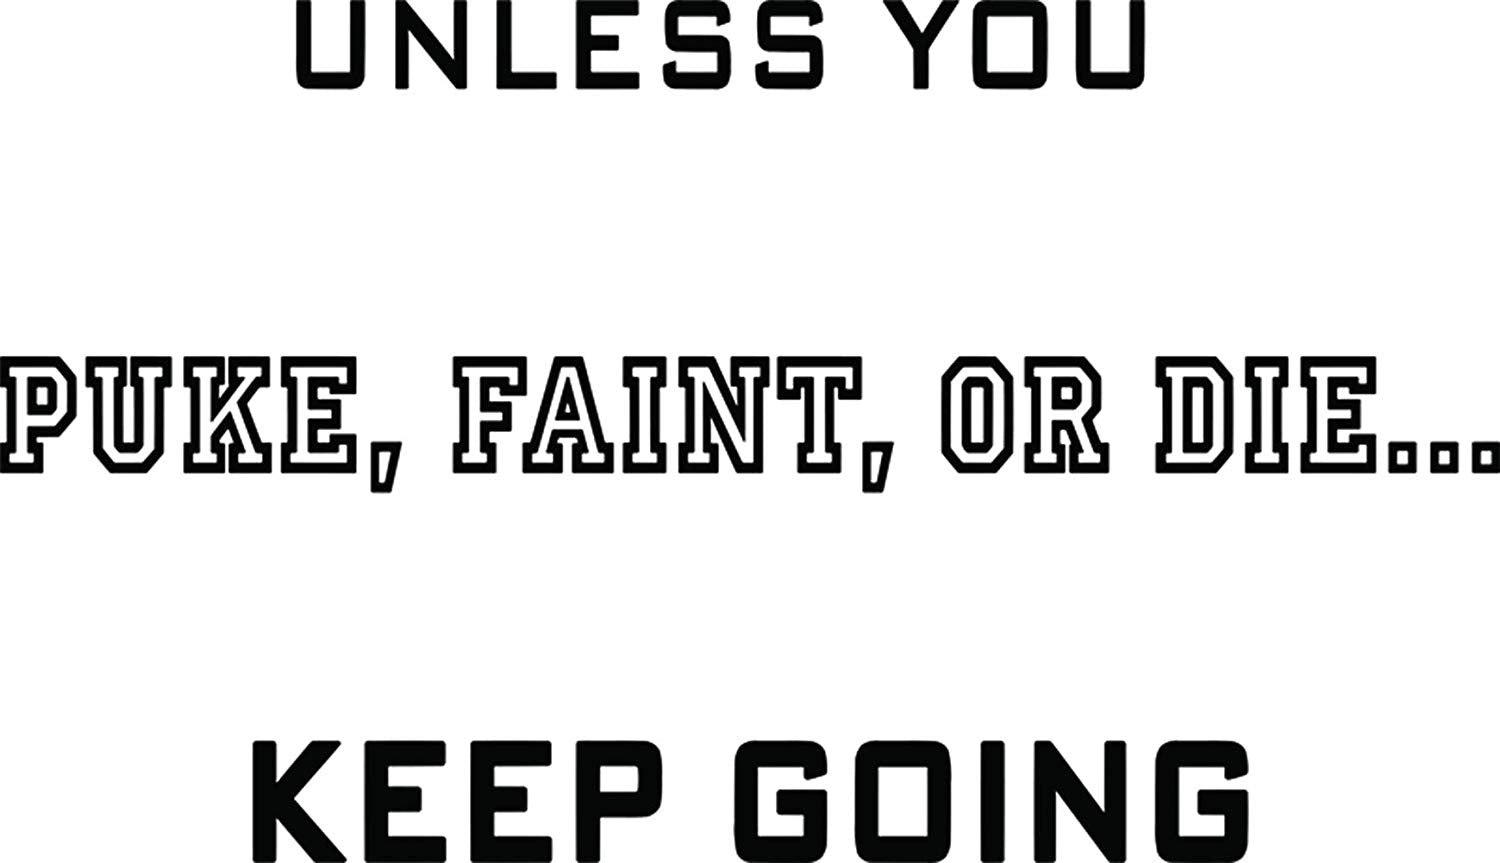 VWAQ Unless You Puke Faint Or Die Keep Going Quote Inspirational Fitness Wall Decals no background